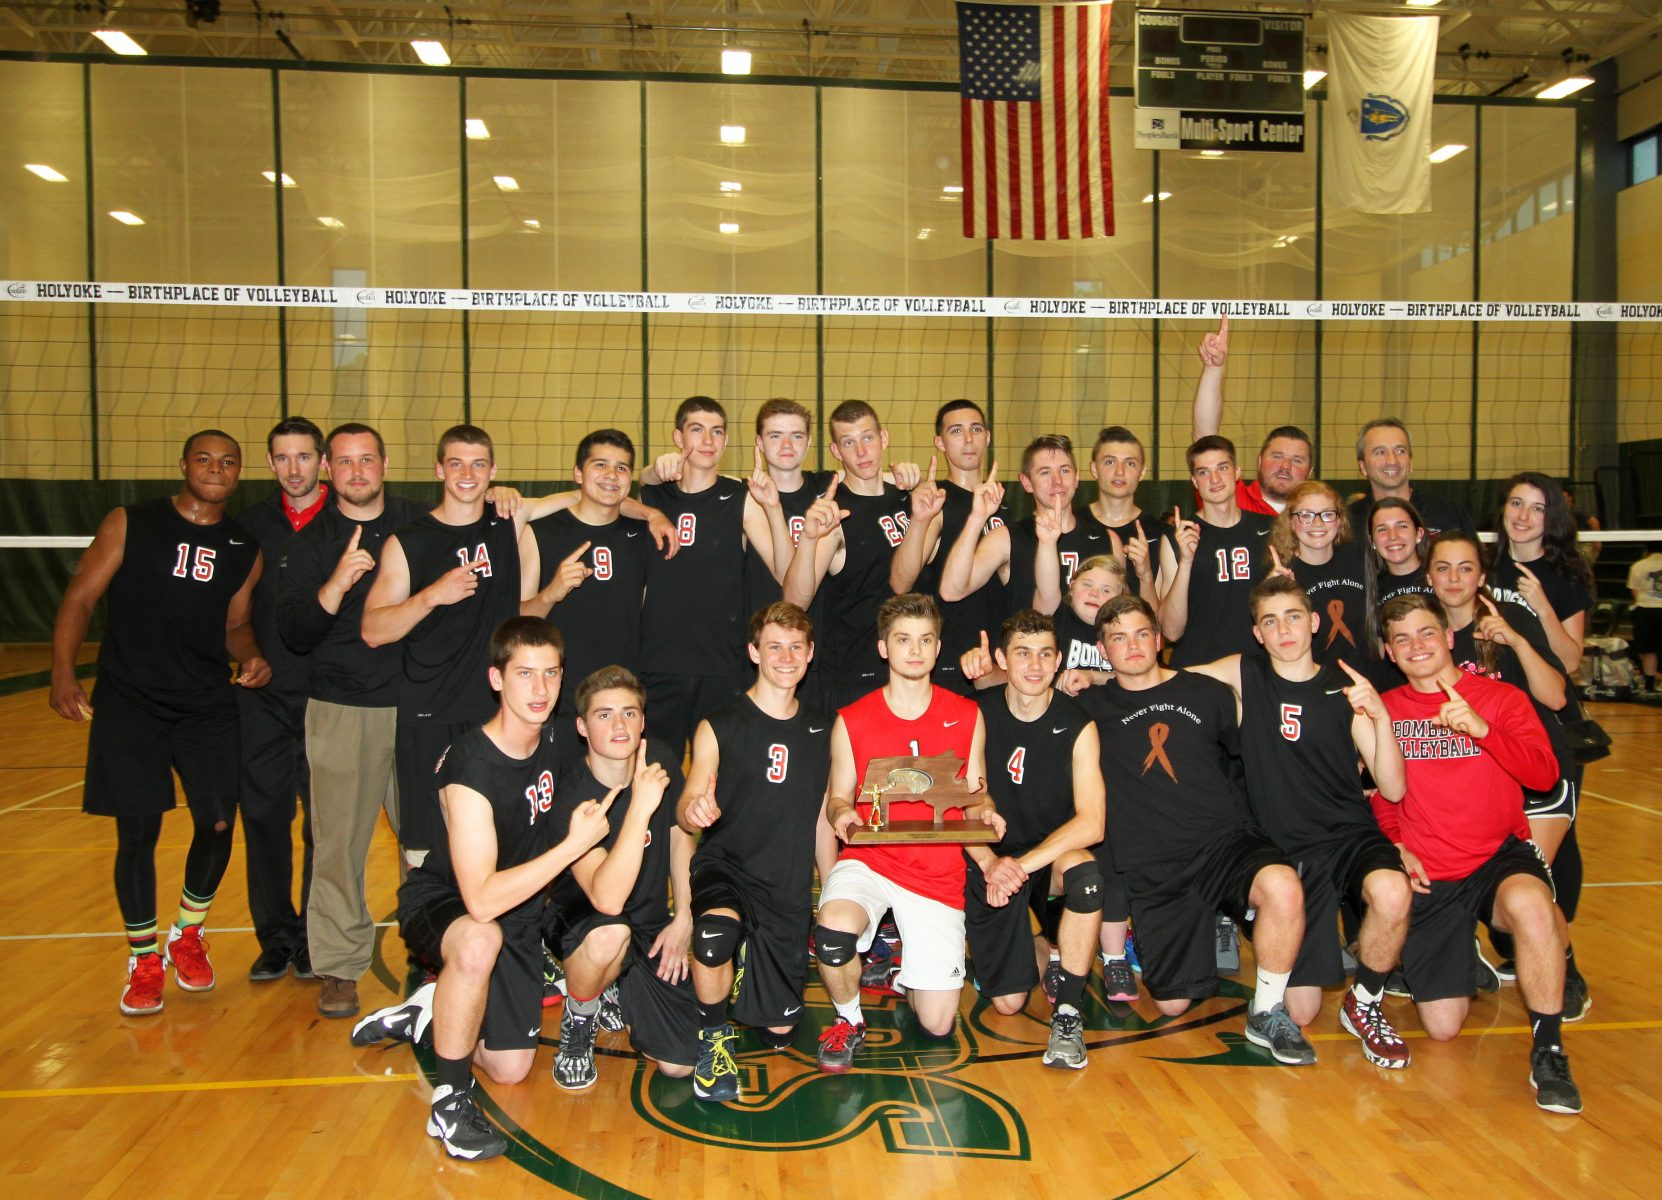 2015 WMASS D1 BOYS' VOLLEYBALL CHAMPION WESTFIELD BOMBERS